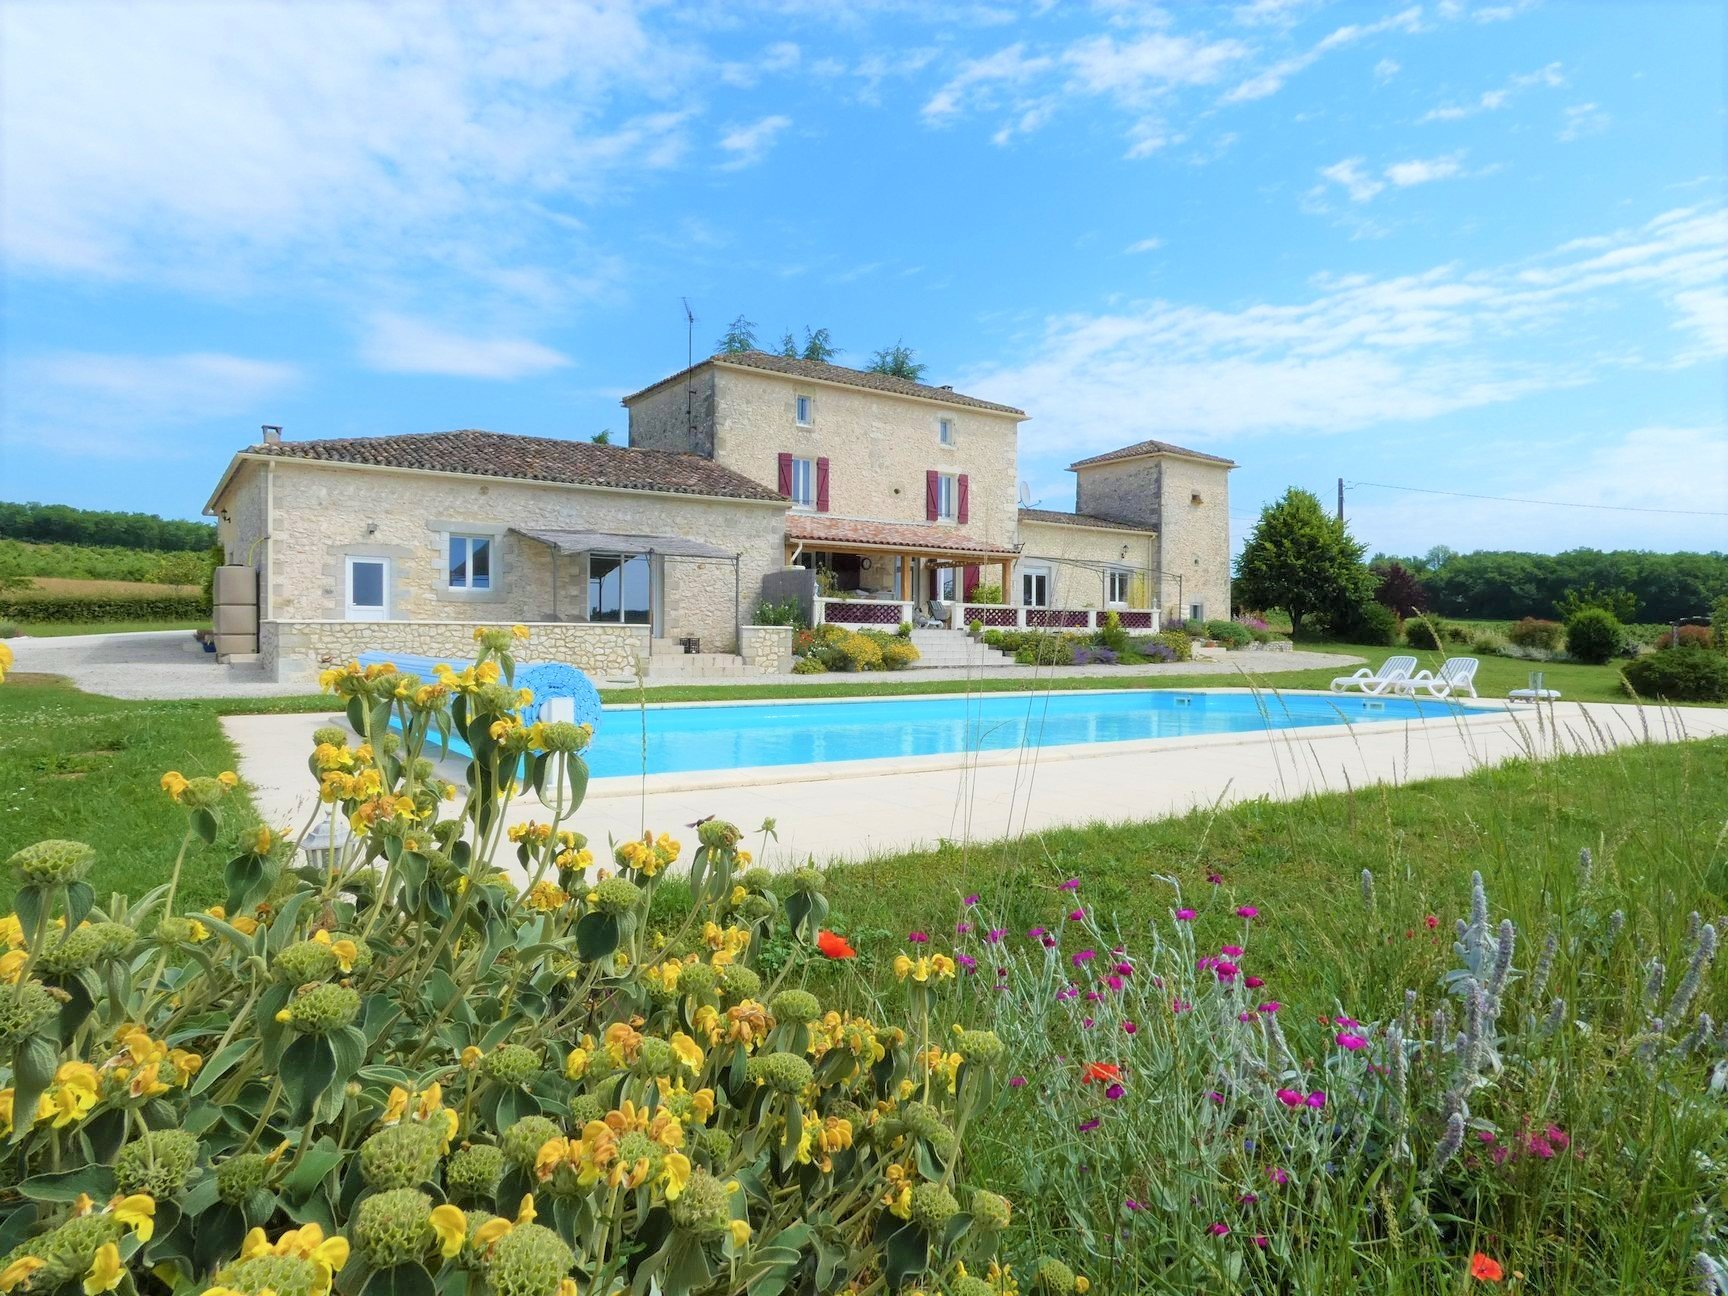 Very nice restoration for this stone house surrounded by its 3.5 hectares of meadows